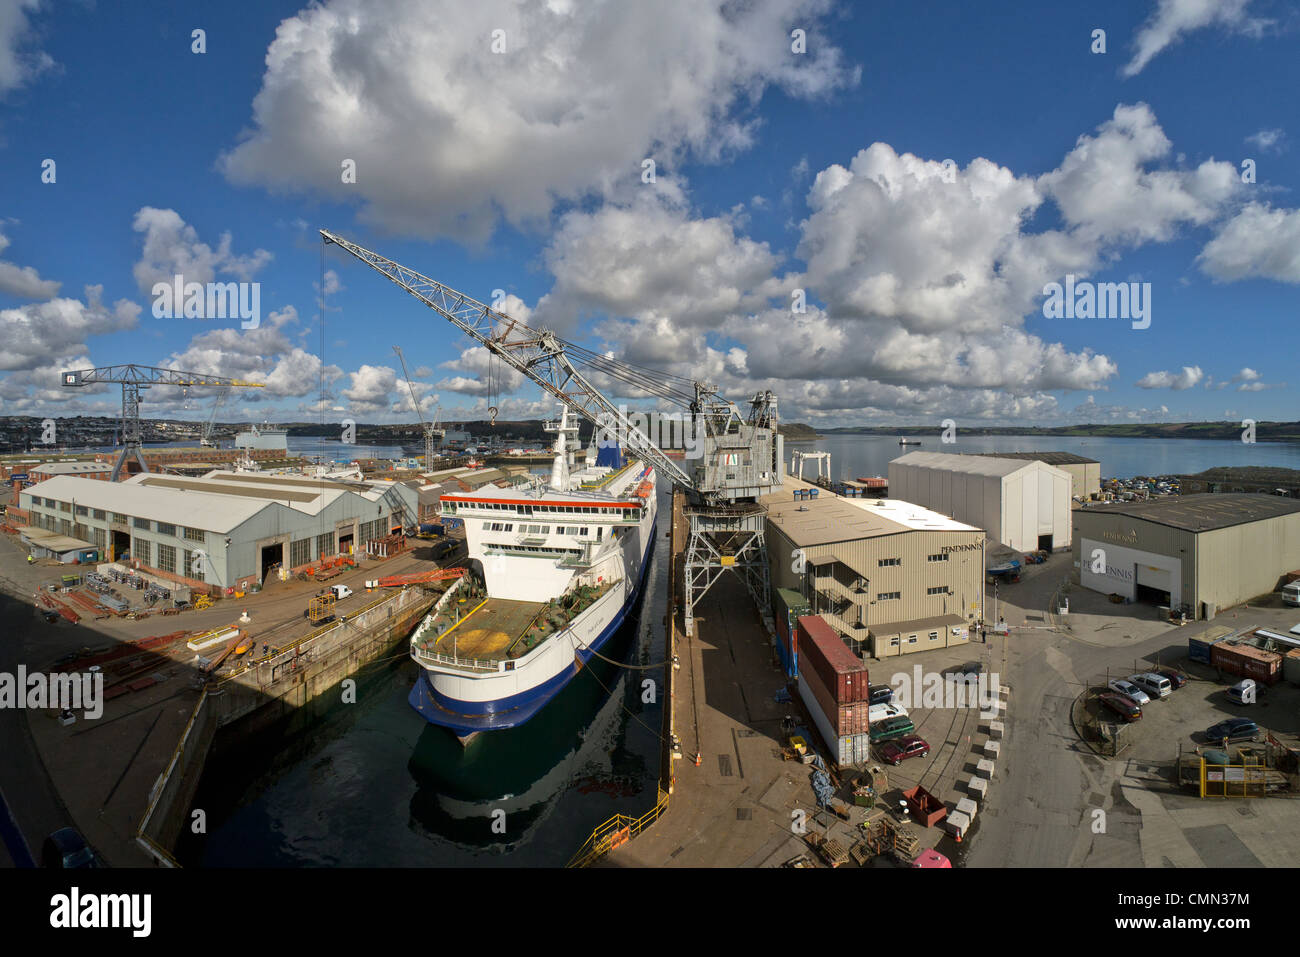 Falmouth dockyard and dry dock with the P&O MS Pride of Calais ferry being refitted. - Stock Image